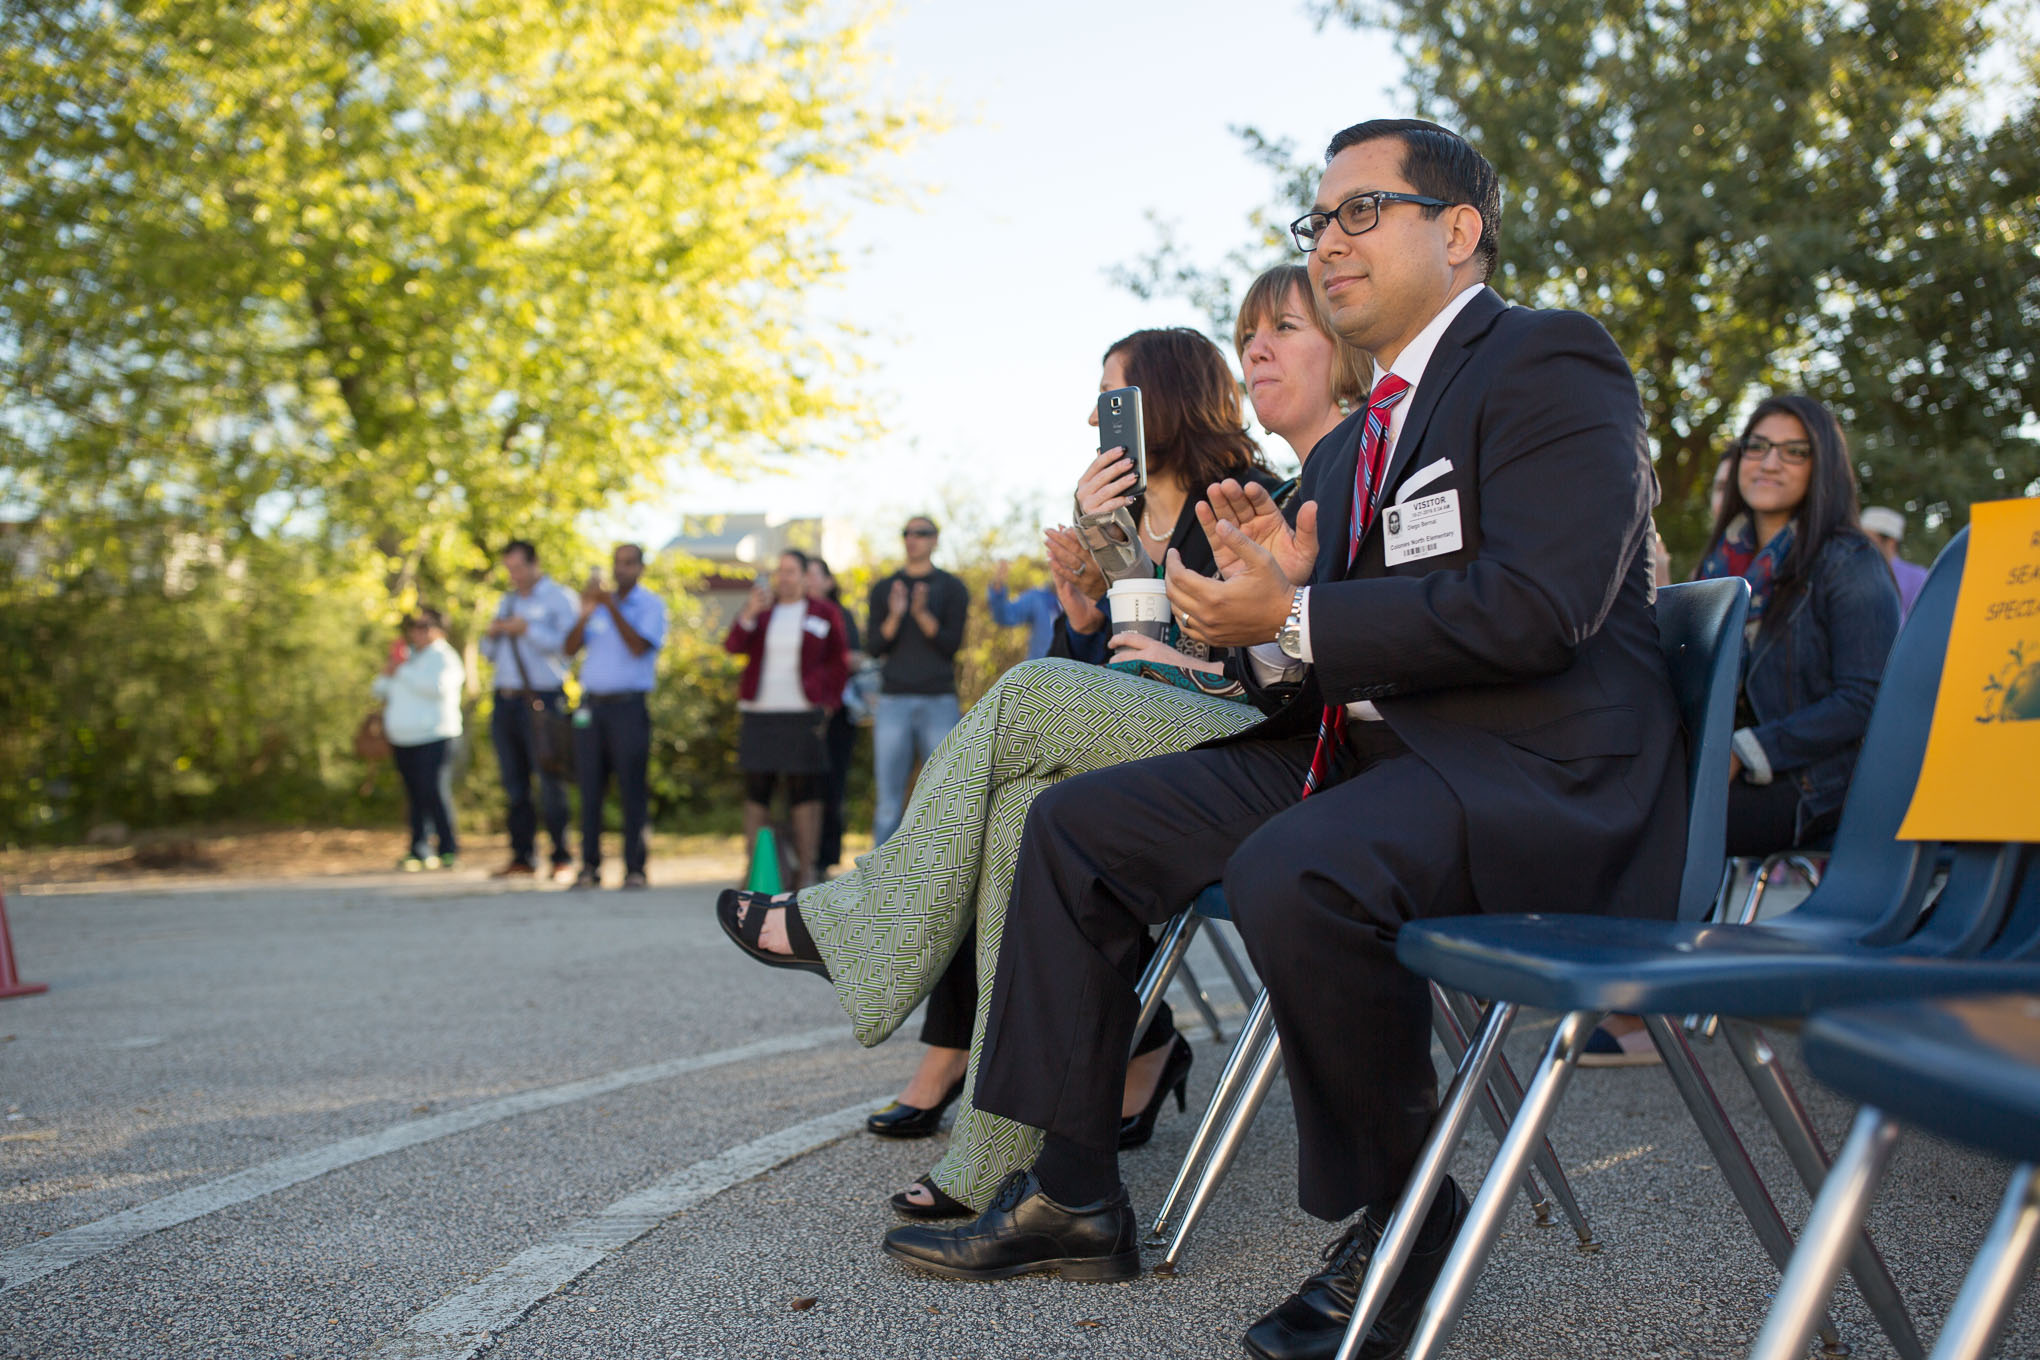 State Rep. Diego Bernal (D-123) applauds as students pass by at North Colonies Elementary.